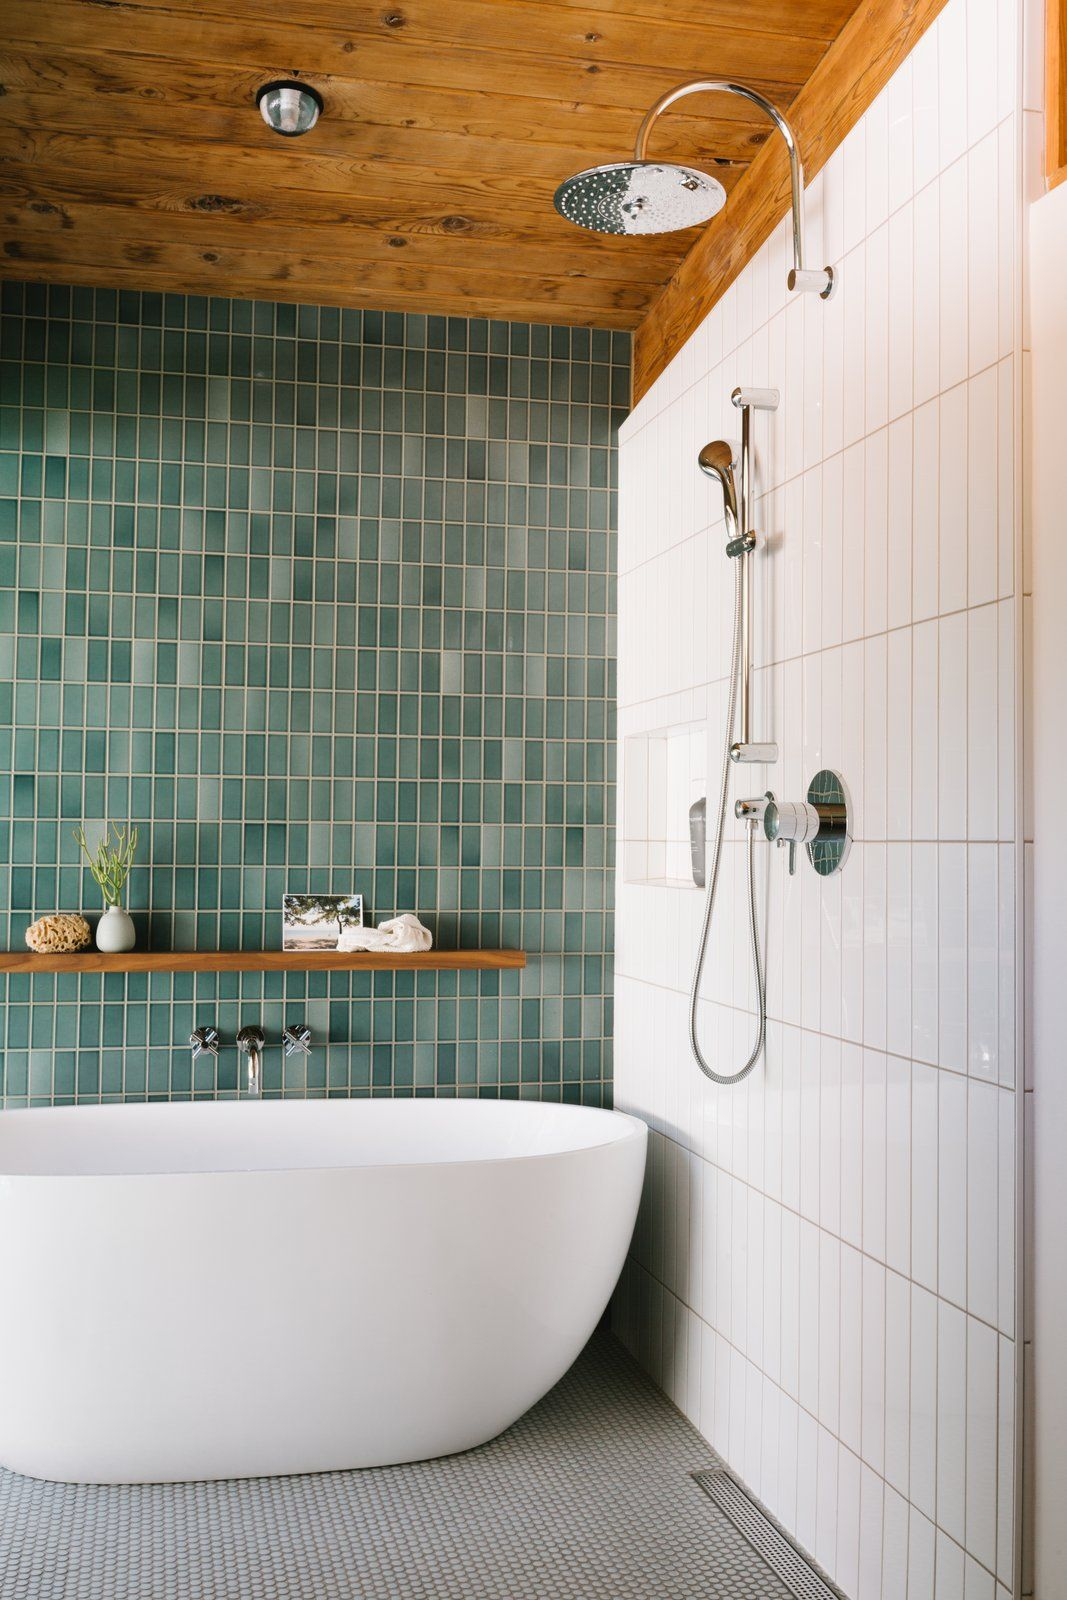 Photo 21 of 21 in Before & After: A Bill Mack Midcentury Gem Gets a…